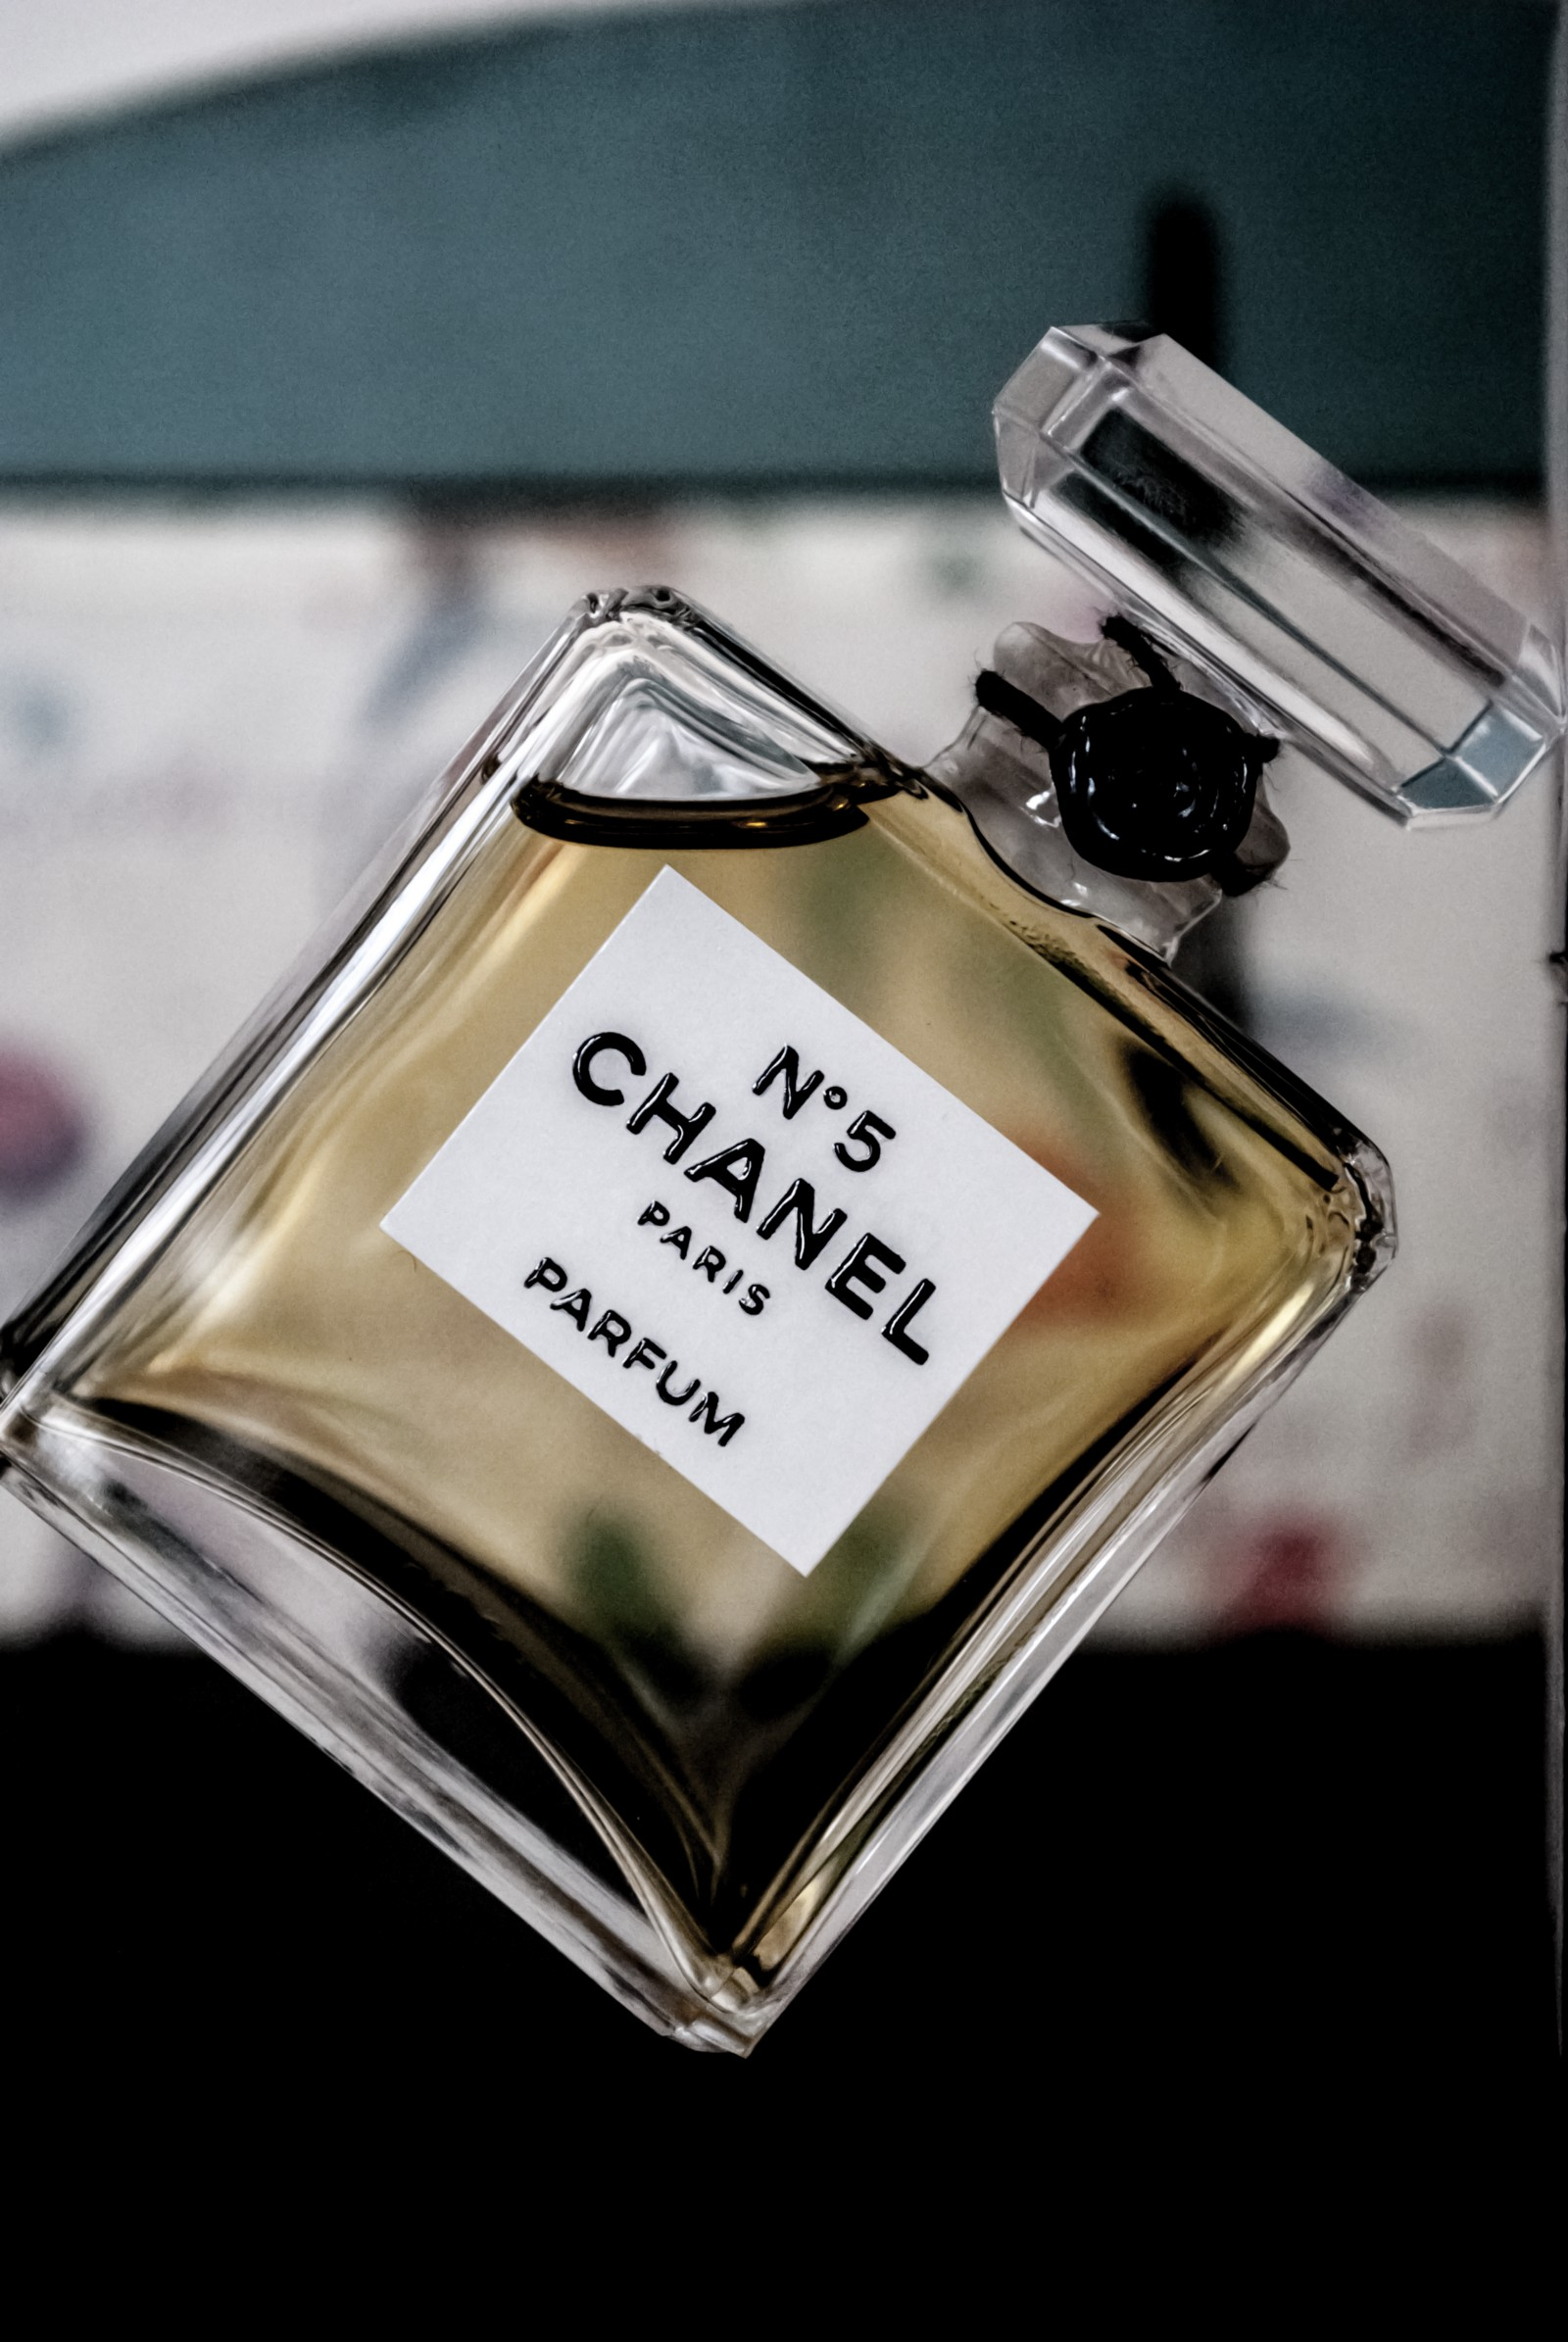 Top Five Perfume Spiritual Meaning - Circus